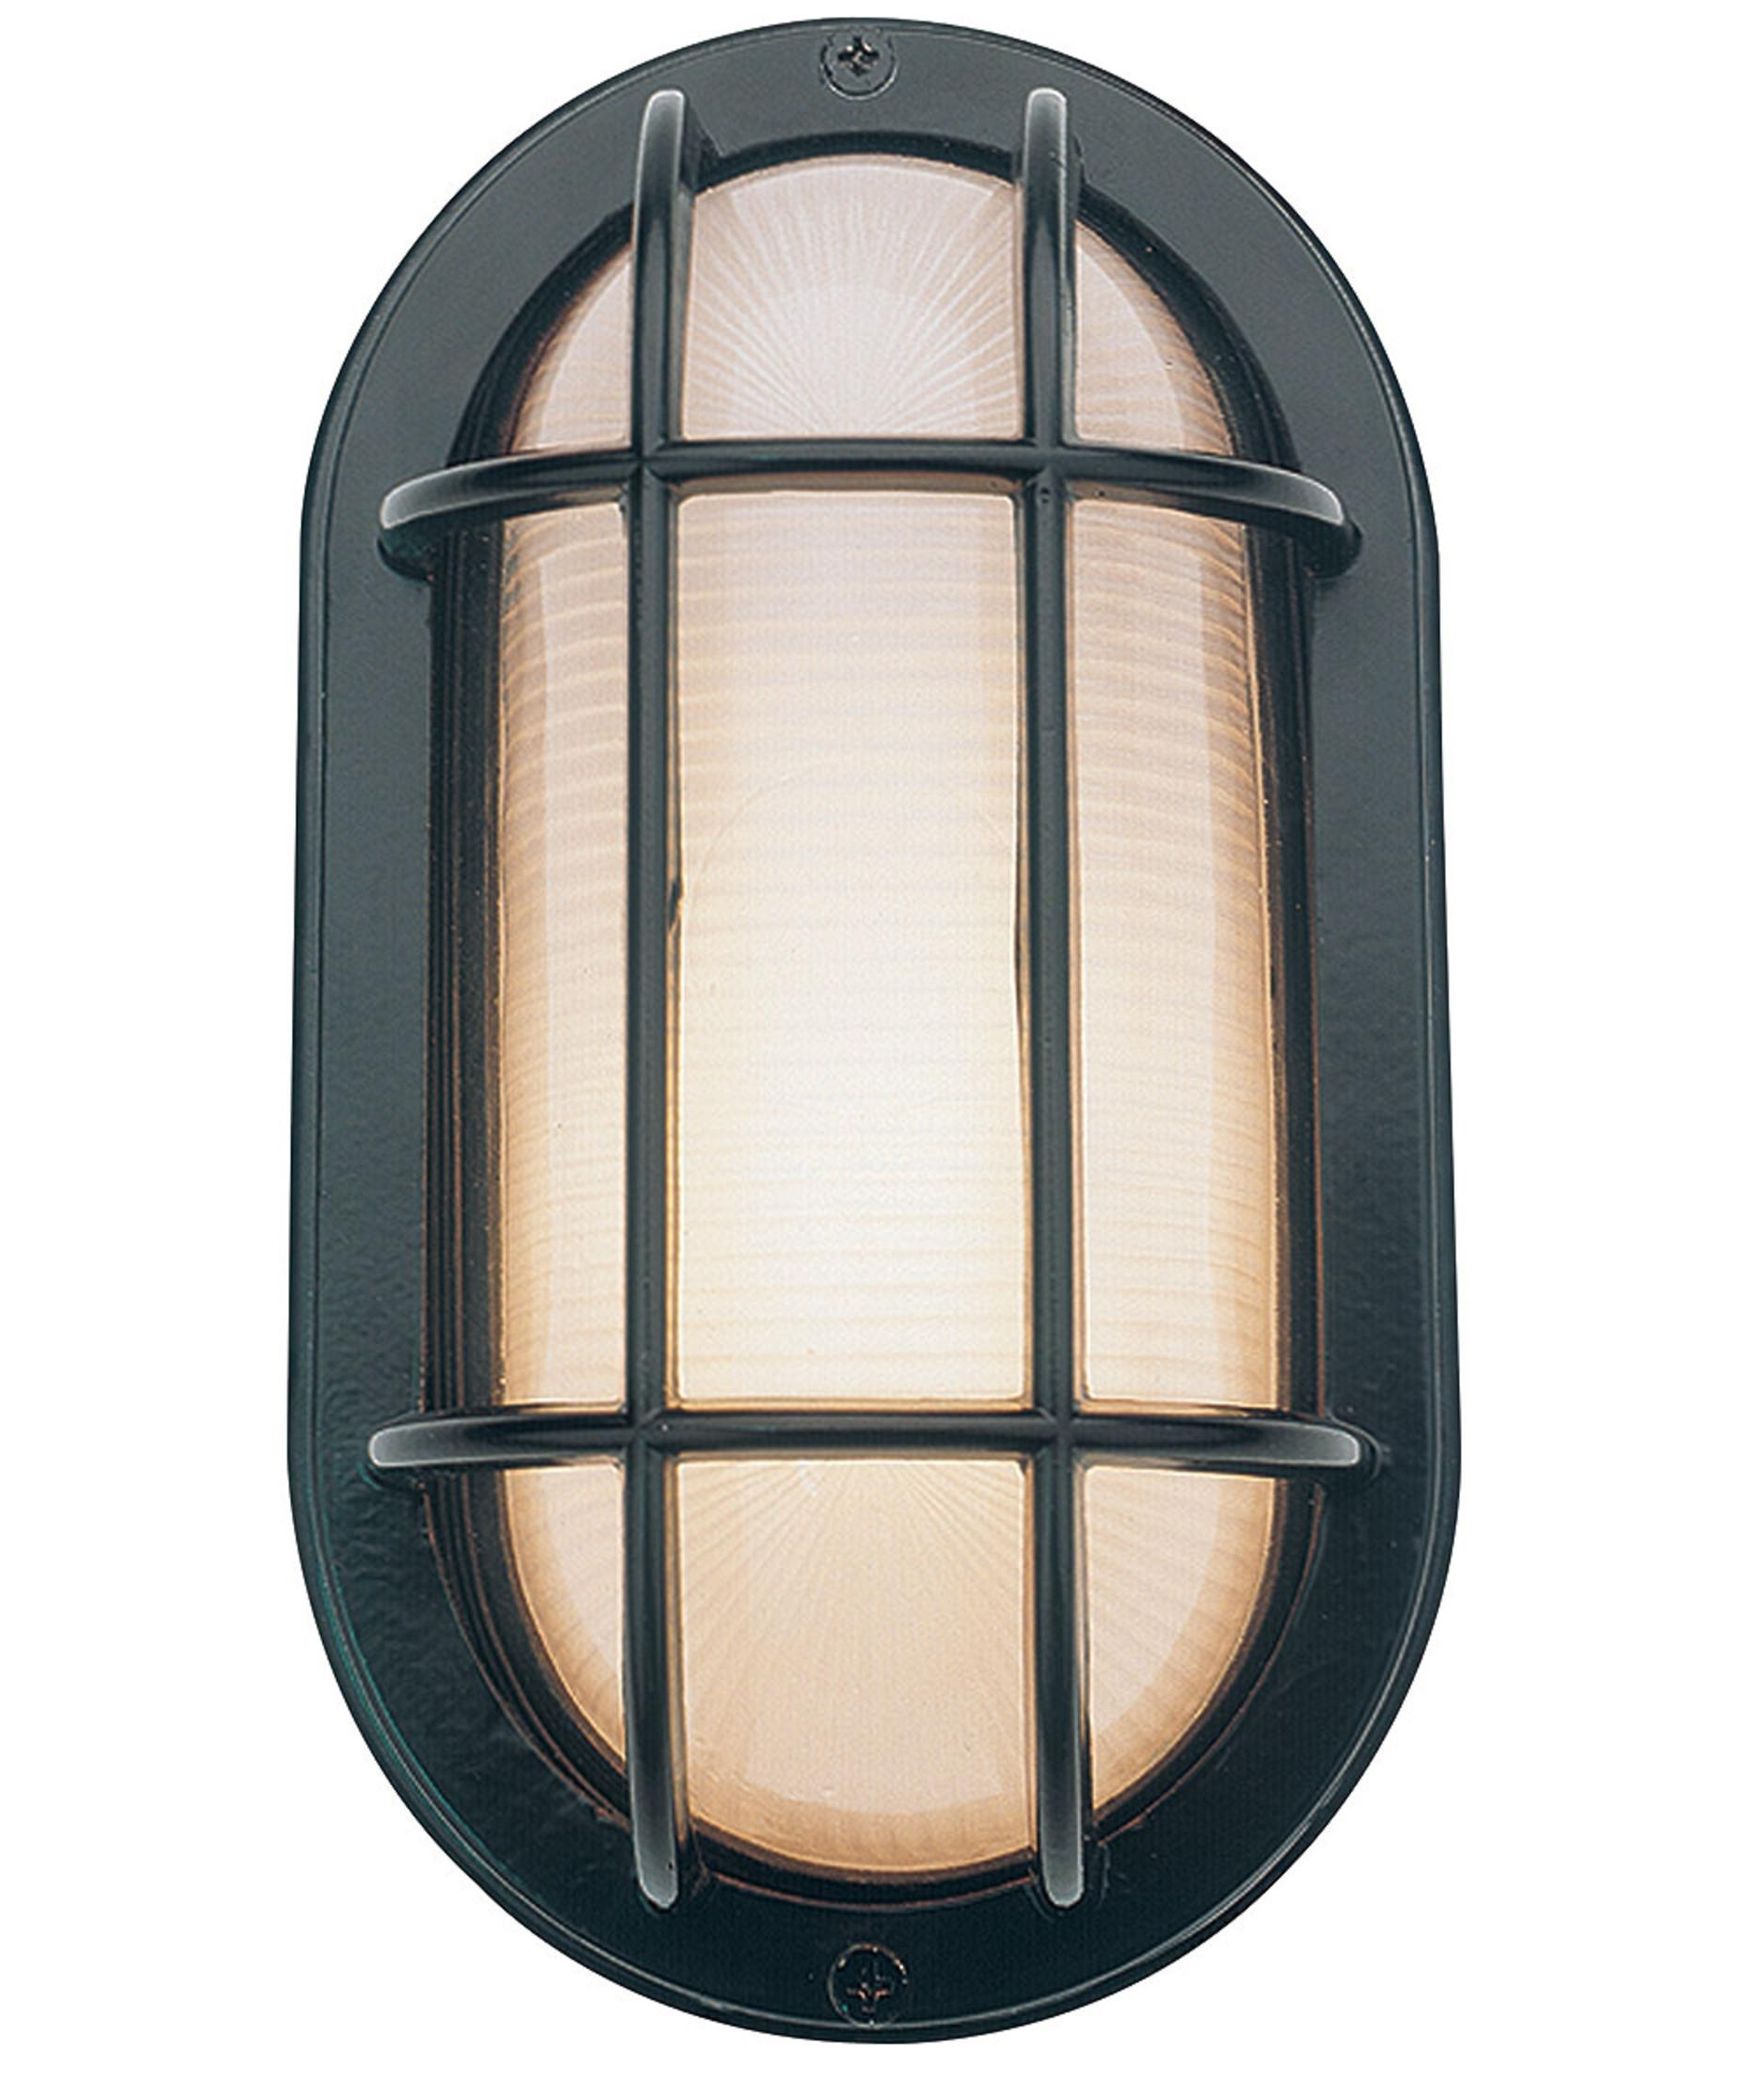 Access Lighting Outdoor Wall Sconces Throughout Favorite Access Lighting 20290 Nauticus 4 Inch Wide 1 Light Outdoor Wall (View 7 of 20)